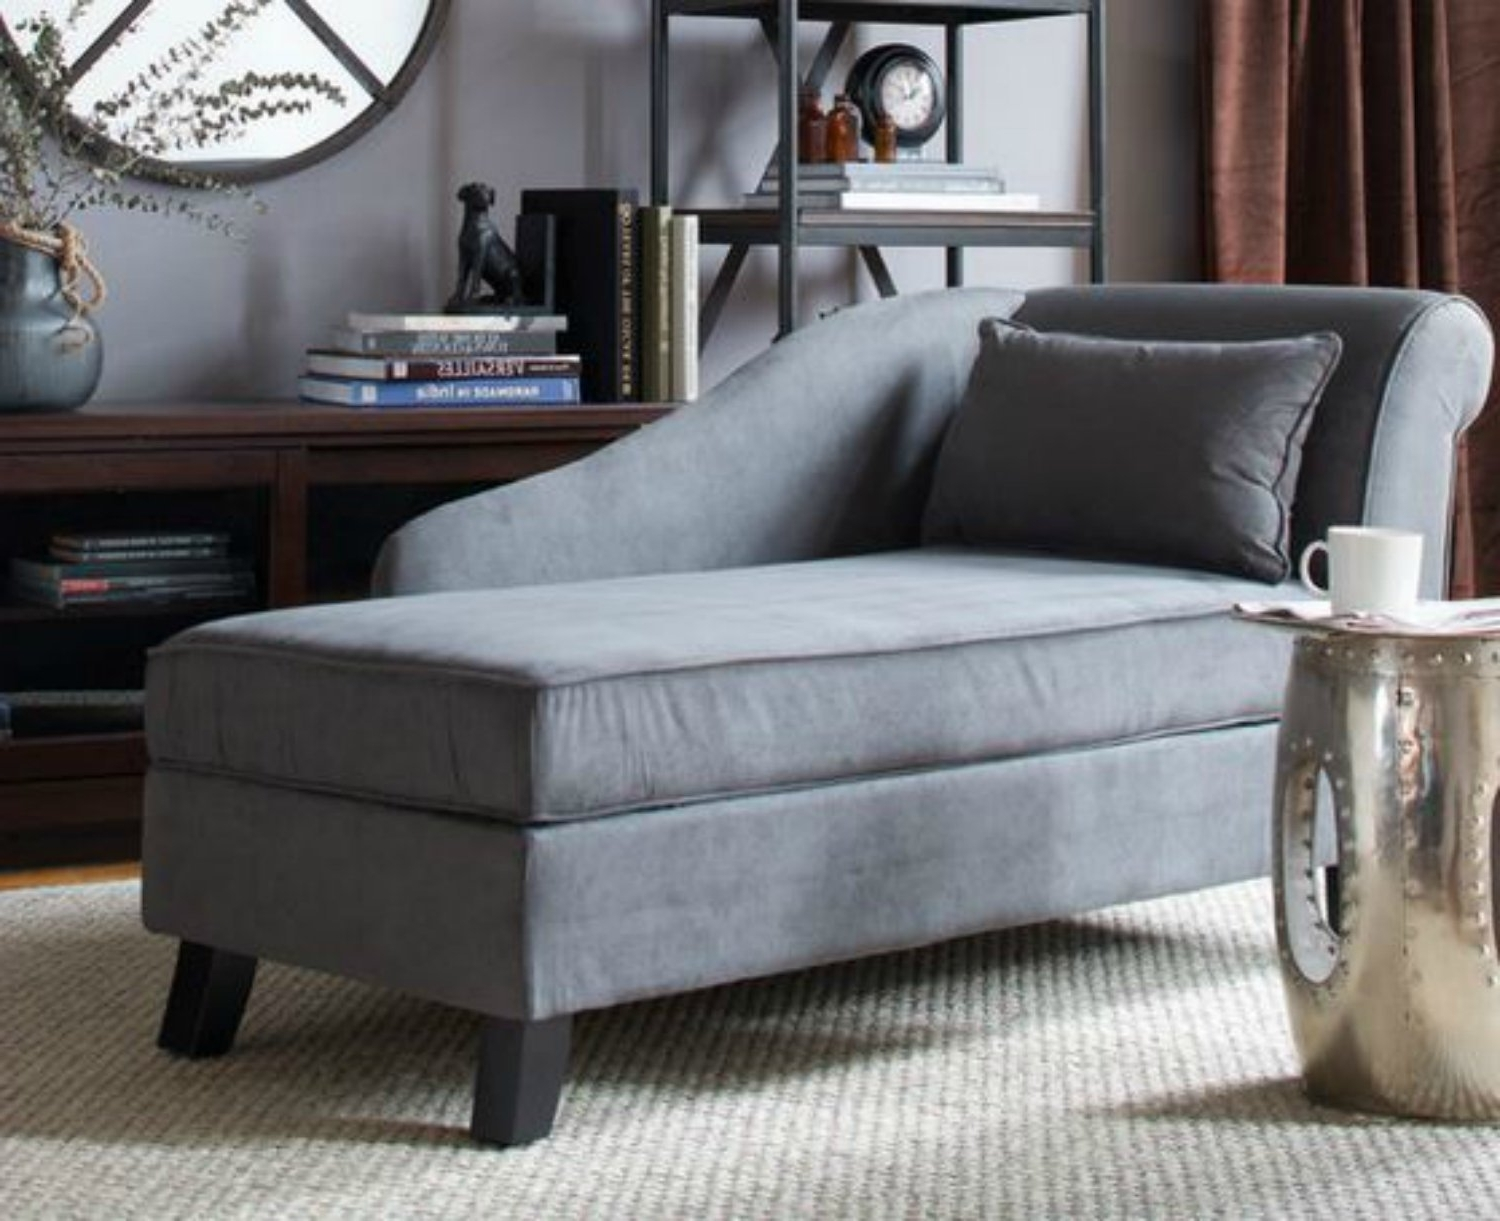 Most Recently Released Chaise Lounges With Storage Regarding Amazon: Storage Chaise Lounge Chair This Microfiber (View 6 of 15)